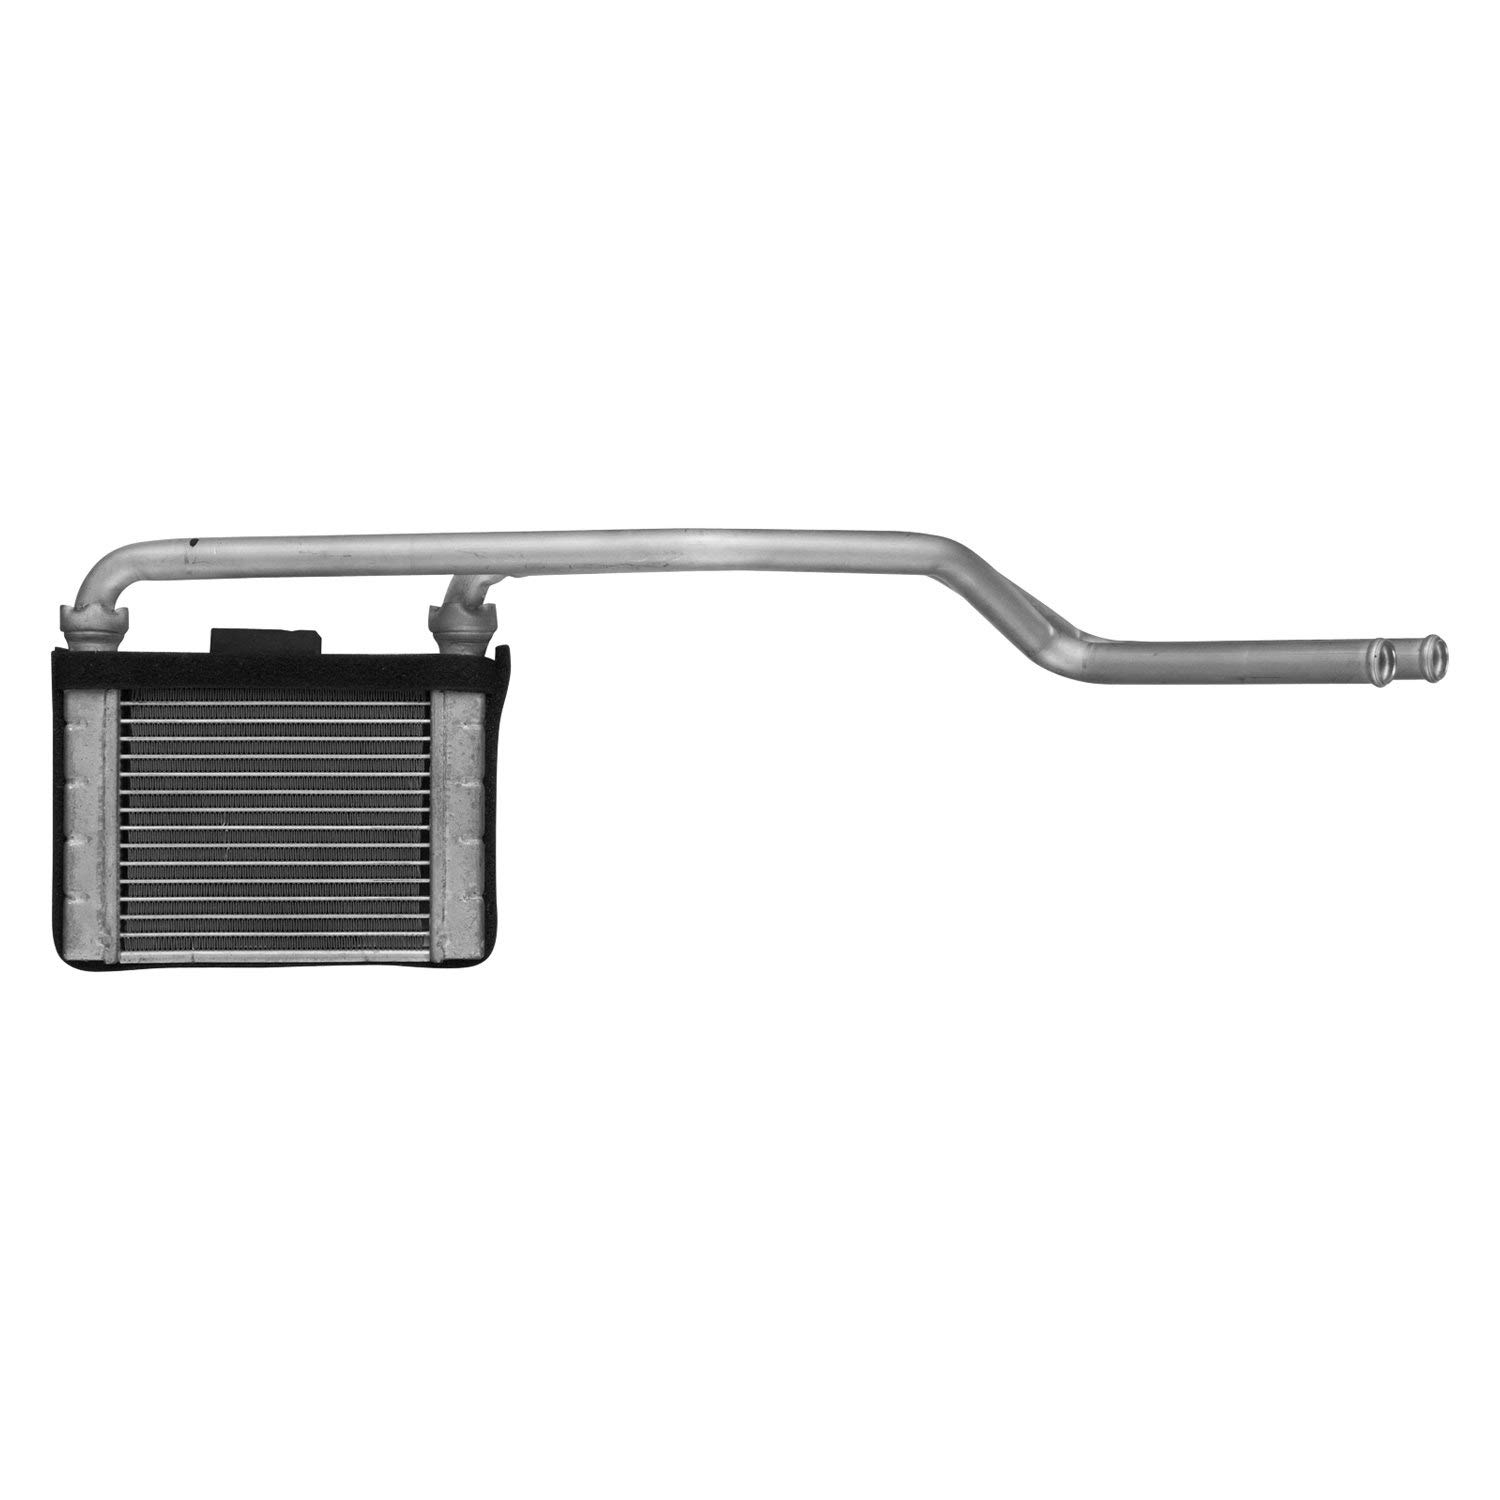 New Replacement CPP HVAC Heater Core for Chrysler Aspen Dodge Durango OEM Quality